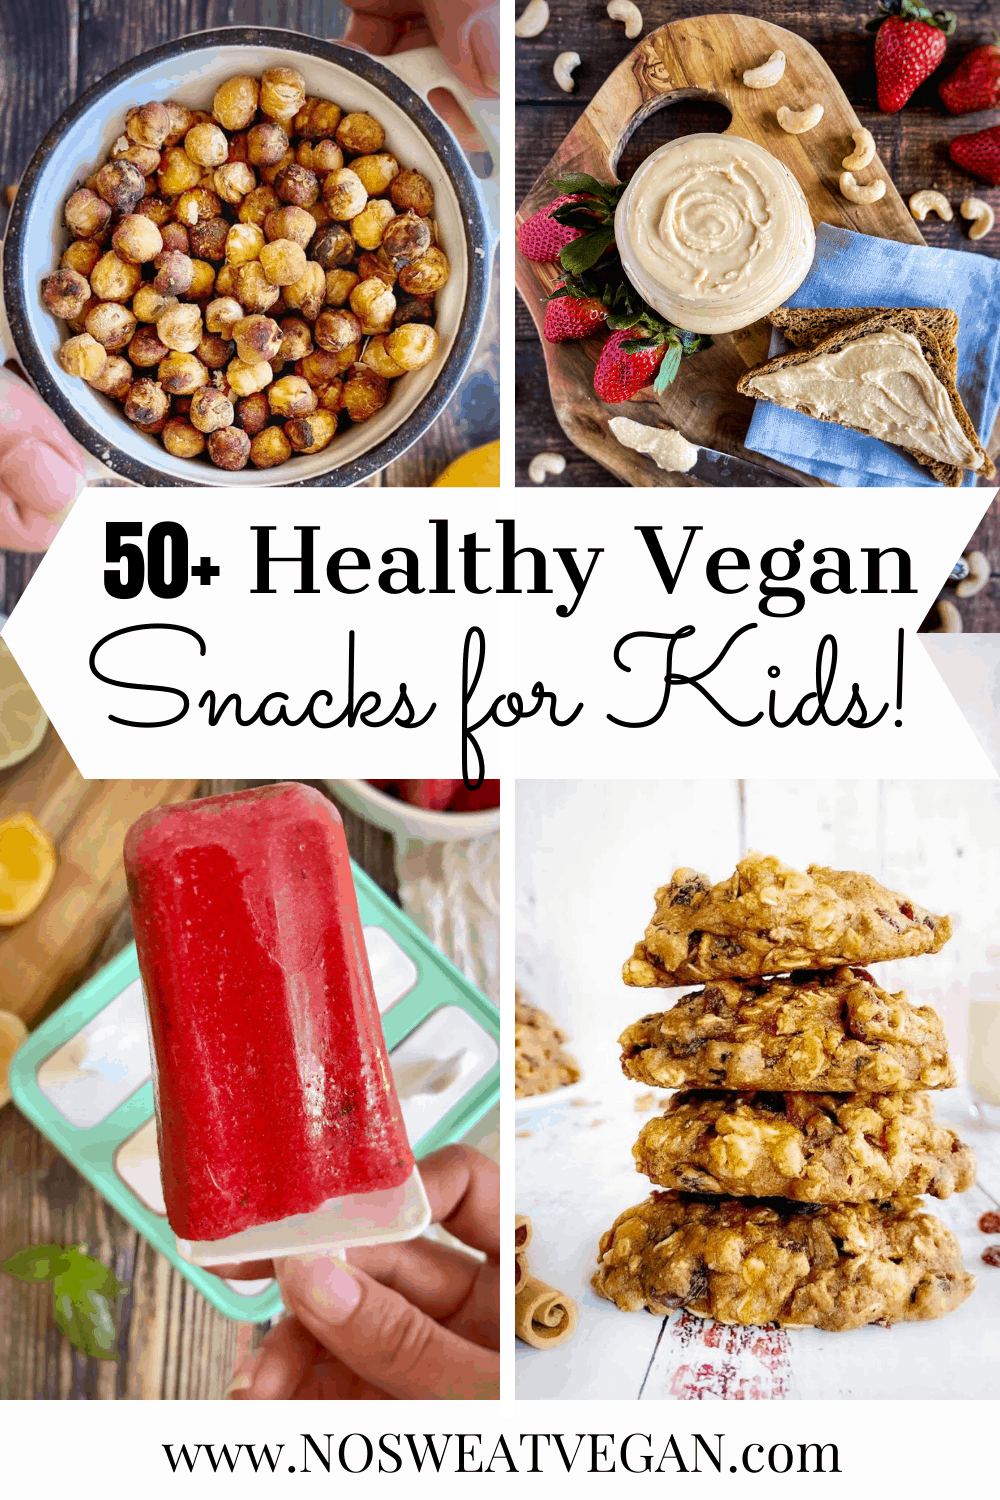 Collage showing Vegan Snacks For Kids. (Roasted chickpeas, cashew butter on toast, strawberry citrus popsicle, and healthy vegan oatmeal raisin cookies.)